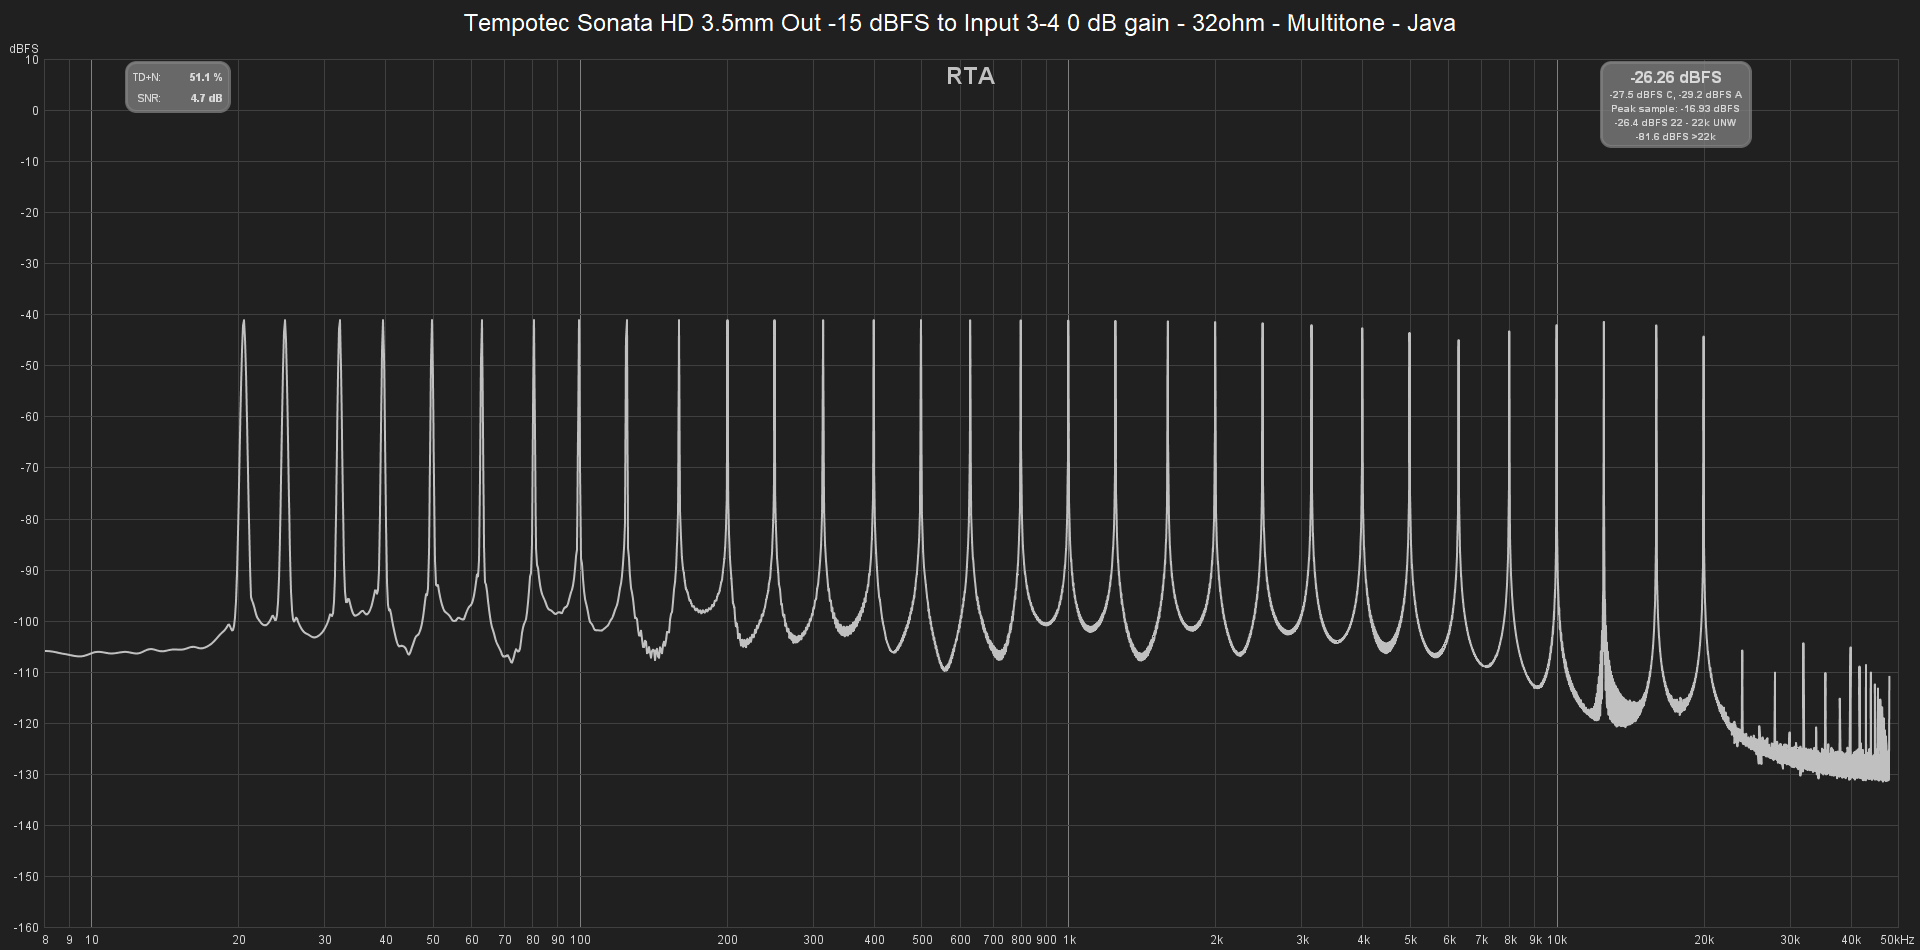 Tempotec Sonata HD 3.5mm Out -15 dBFS to Input 3-4 0 dB gain - 32ohm - Multitone - Java.png